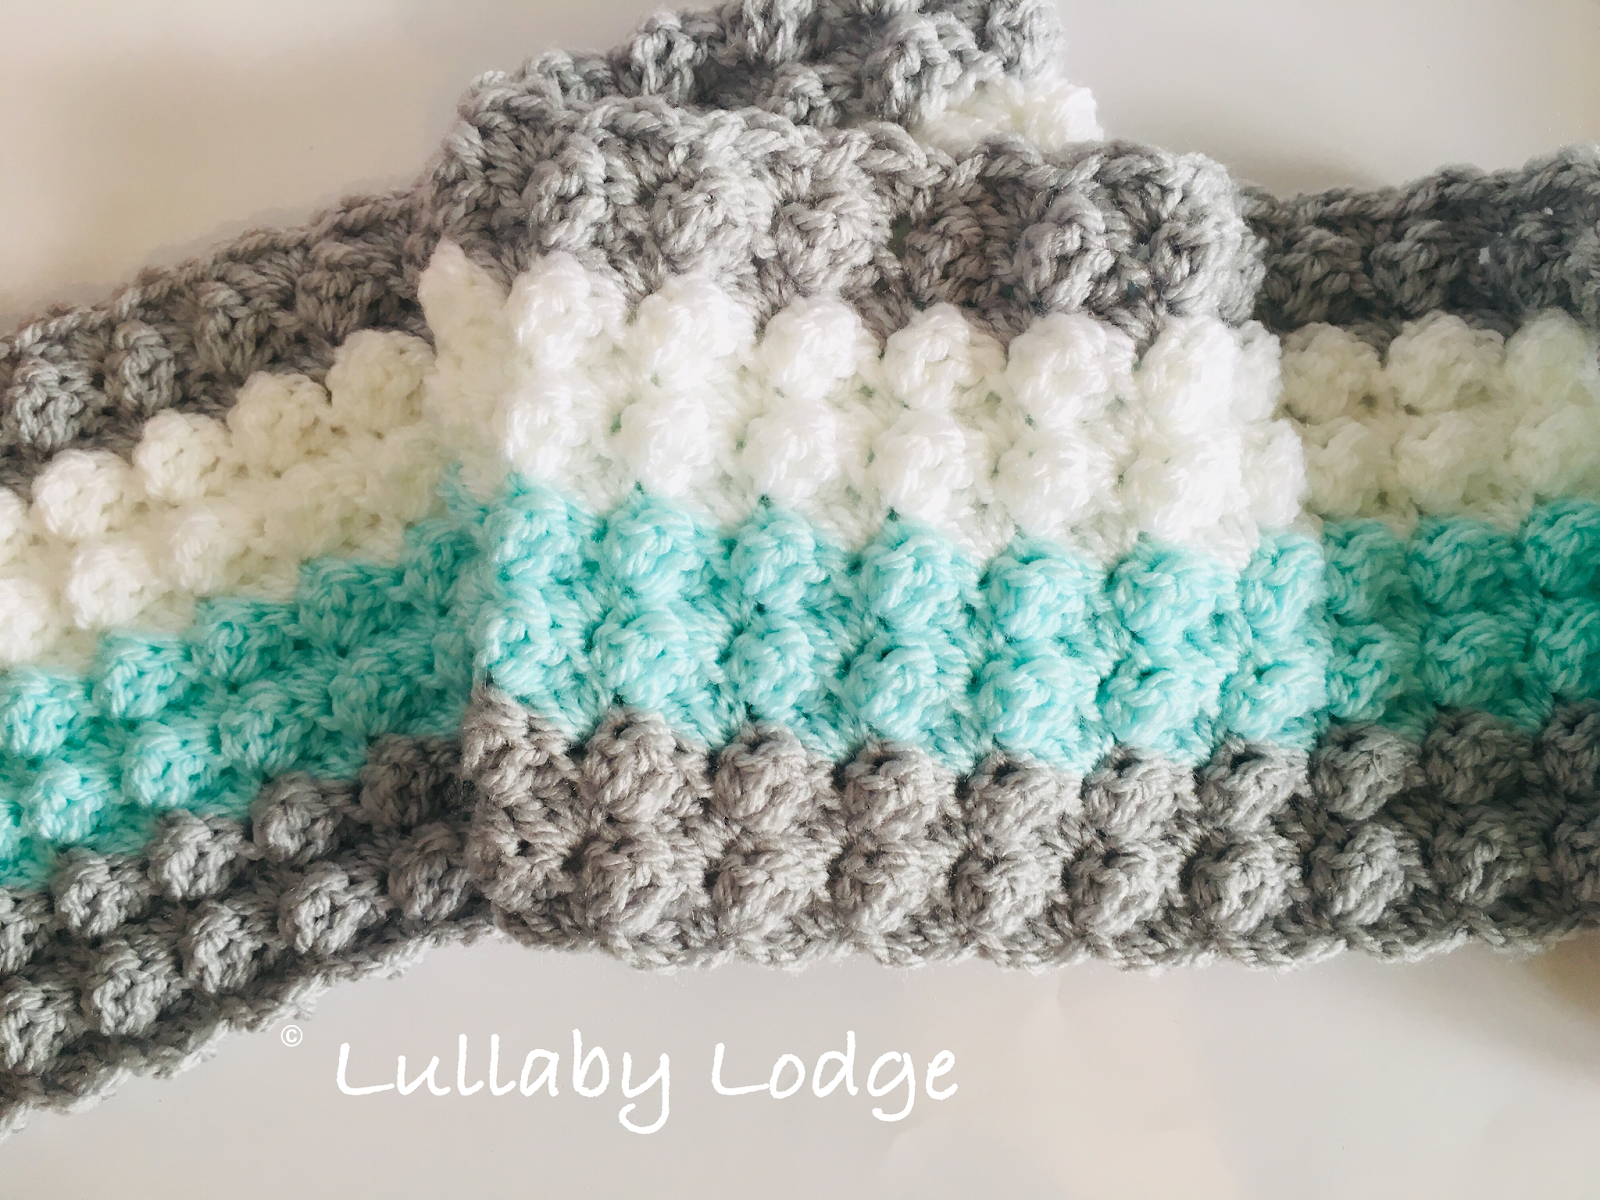 Lullaby Lodge: The Blanket Stitch - Crochet Tutorial